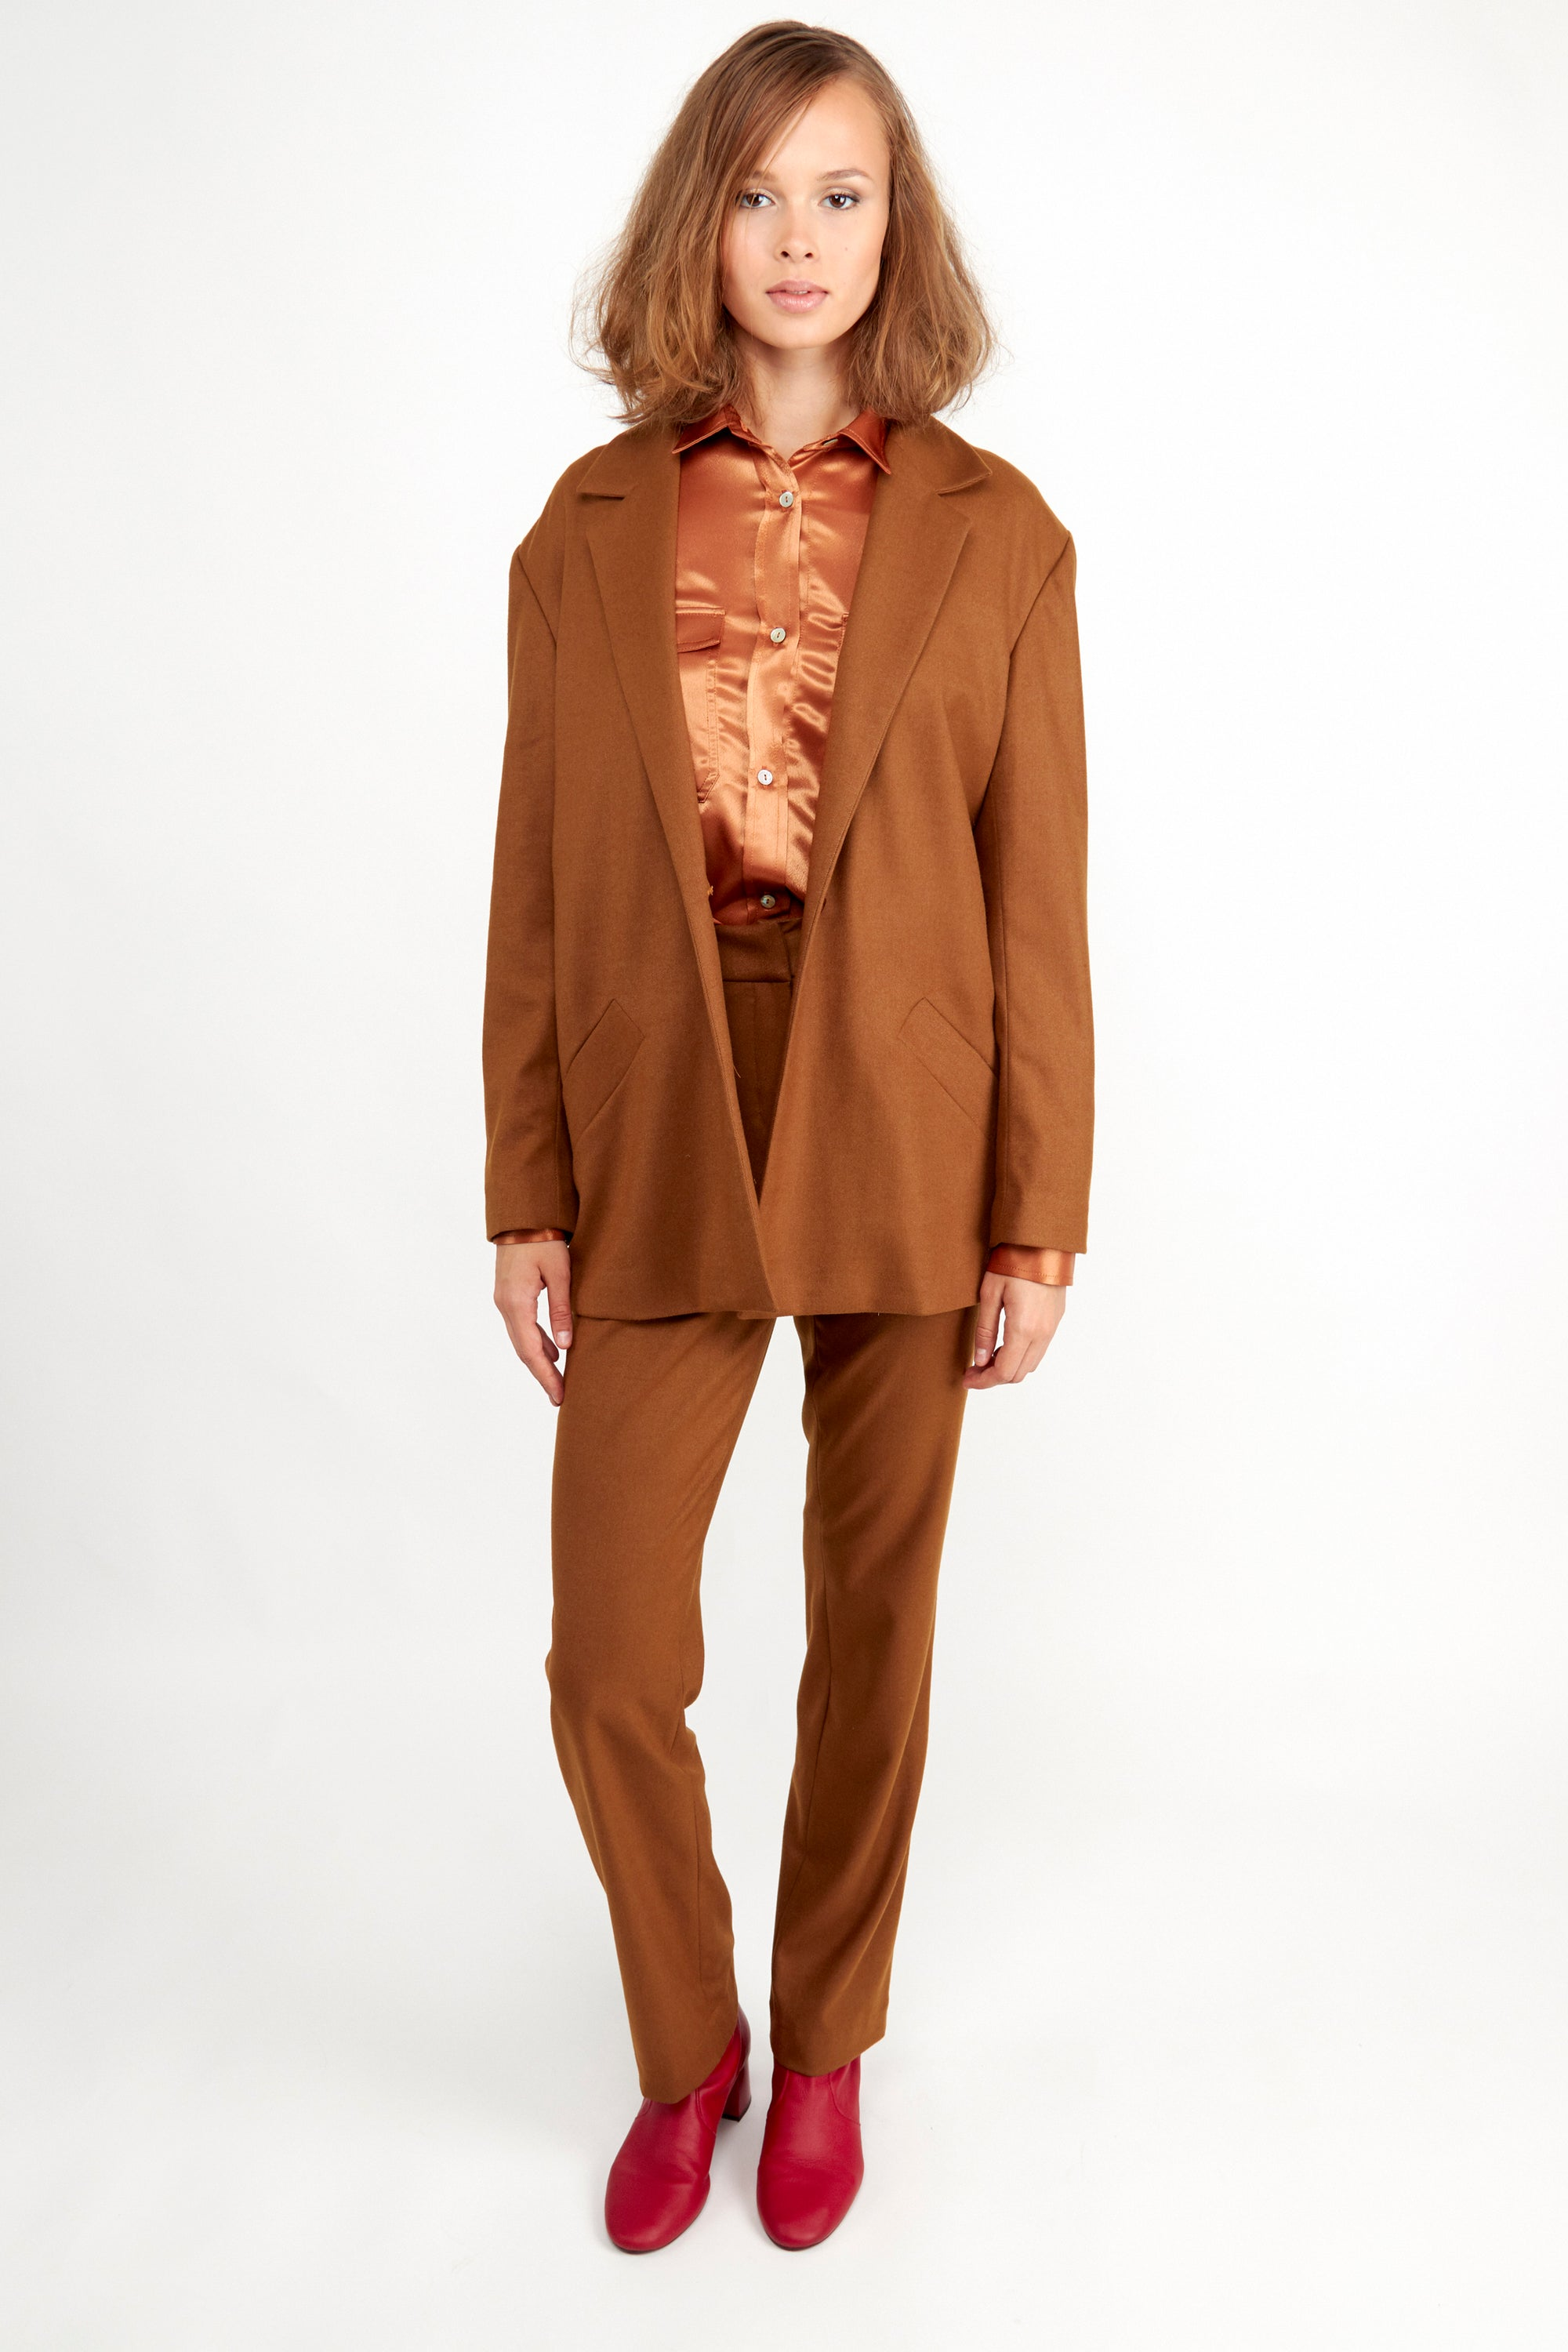 Janis Blazer Caramel | Coats & Jackets | Fair Retail | [product_tag] - Fair Bazaar Ethical Living